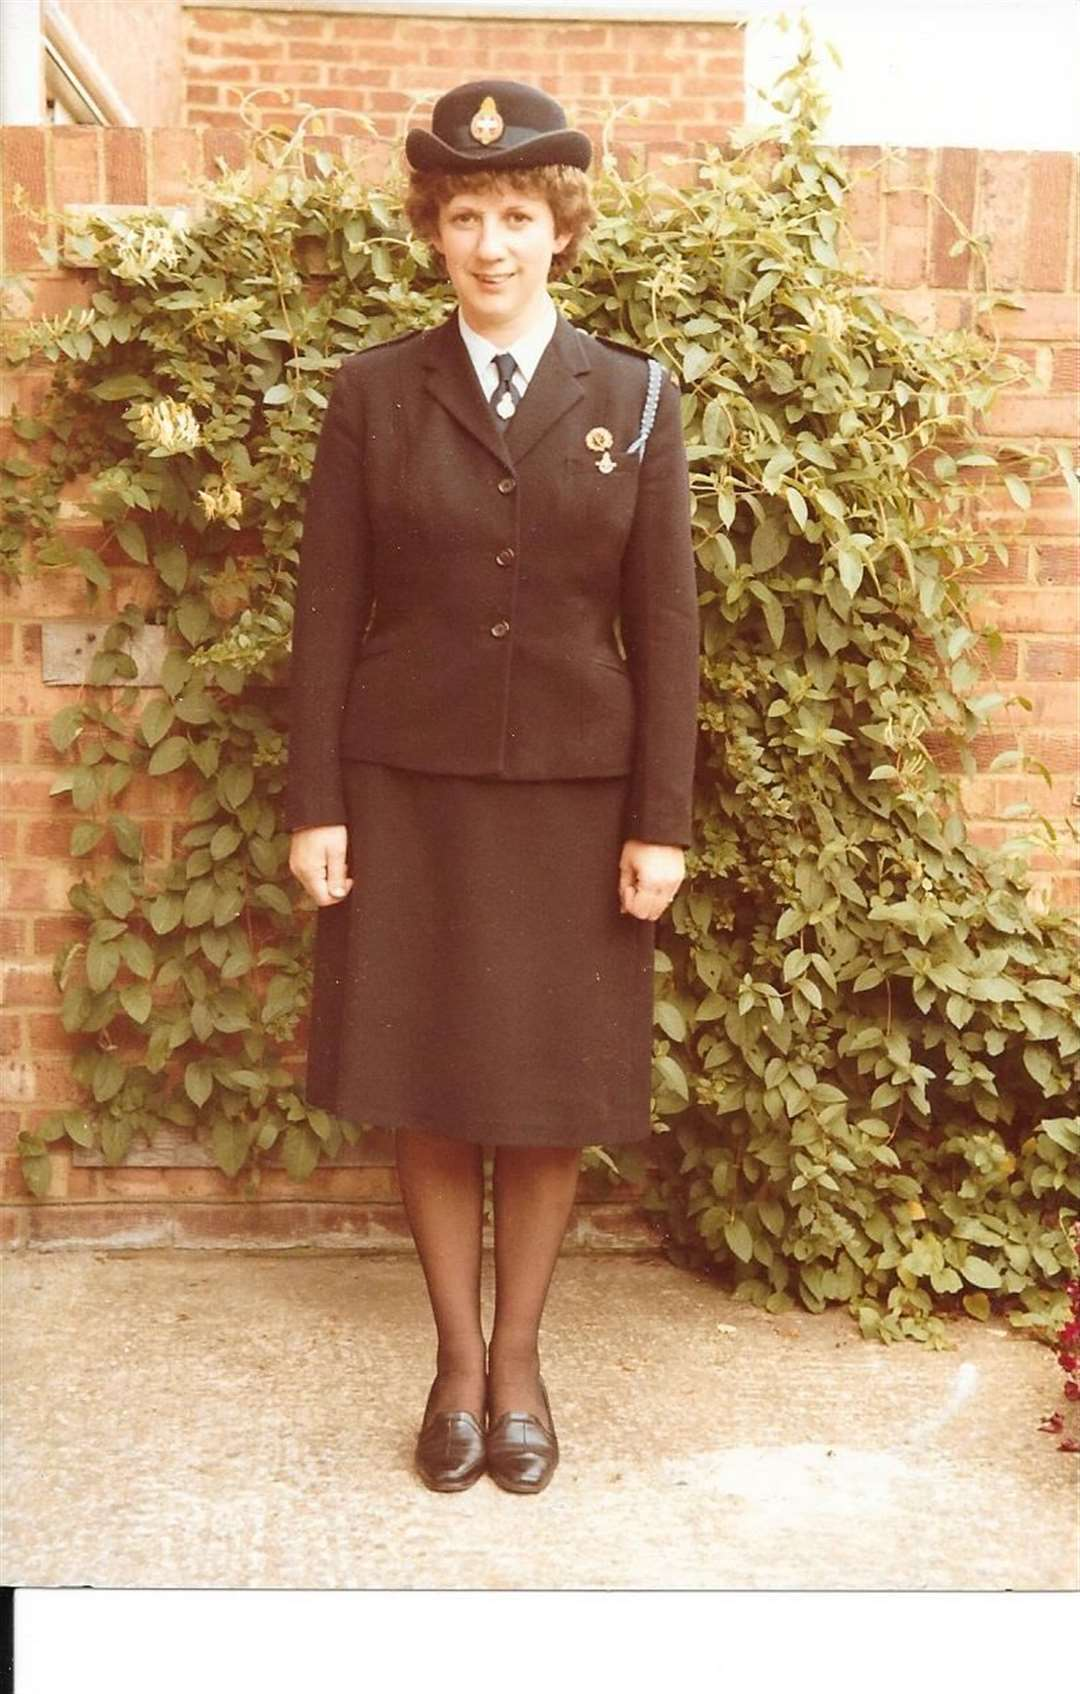 Lynda Nash in her Girl' brigade uniform